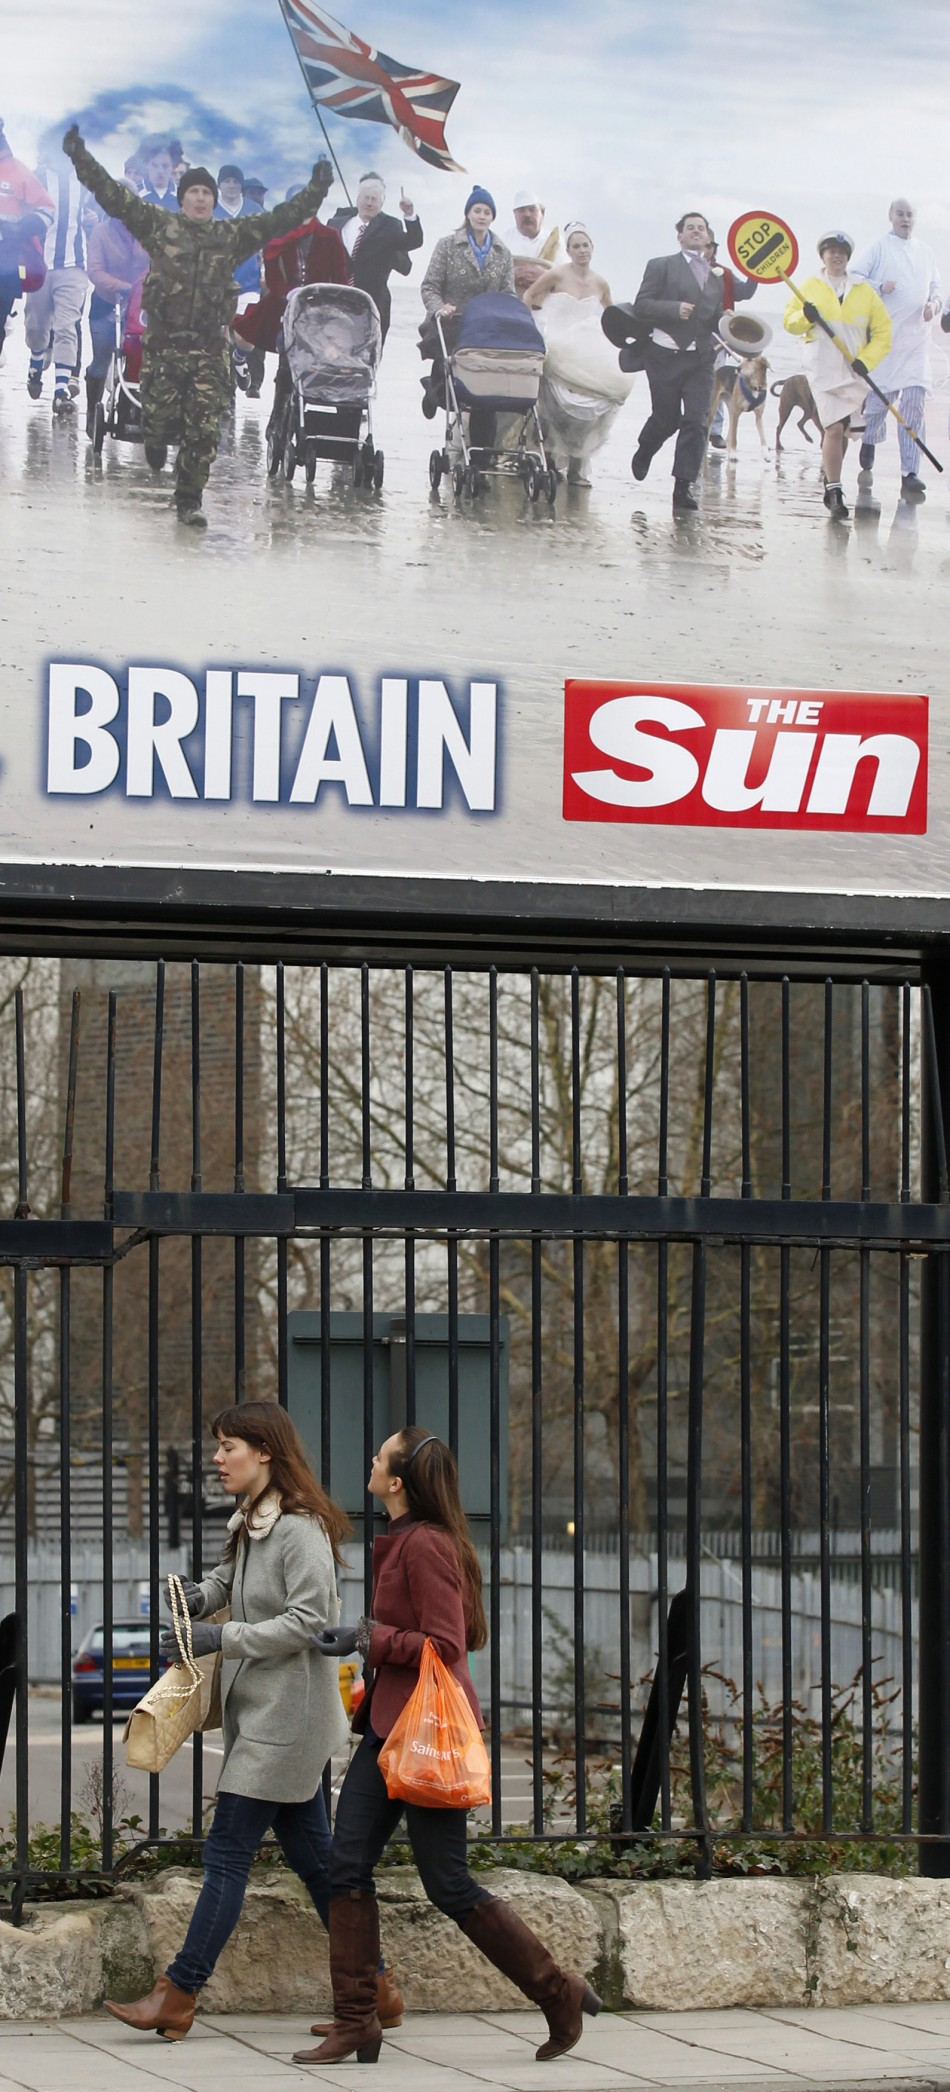 5 journalists of The Sun were arrested by the police